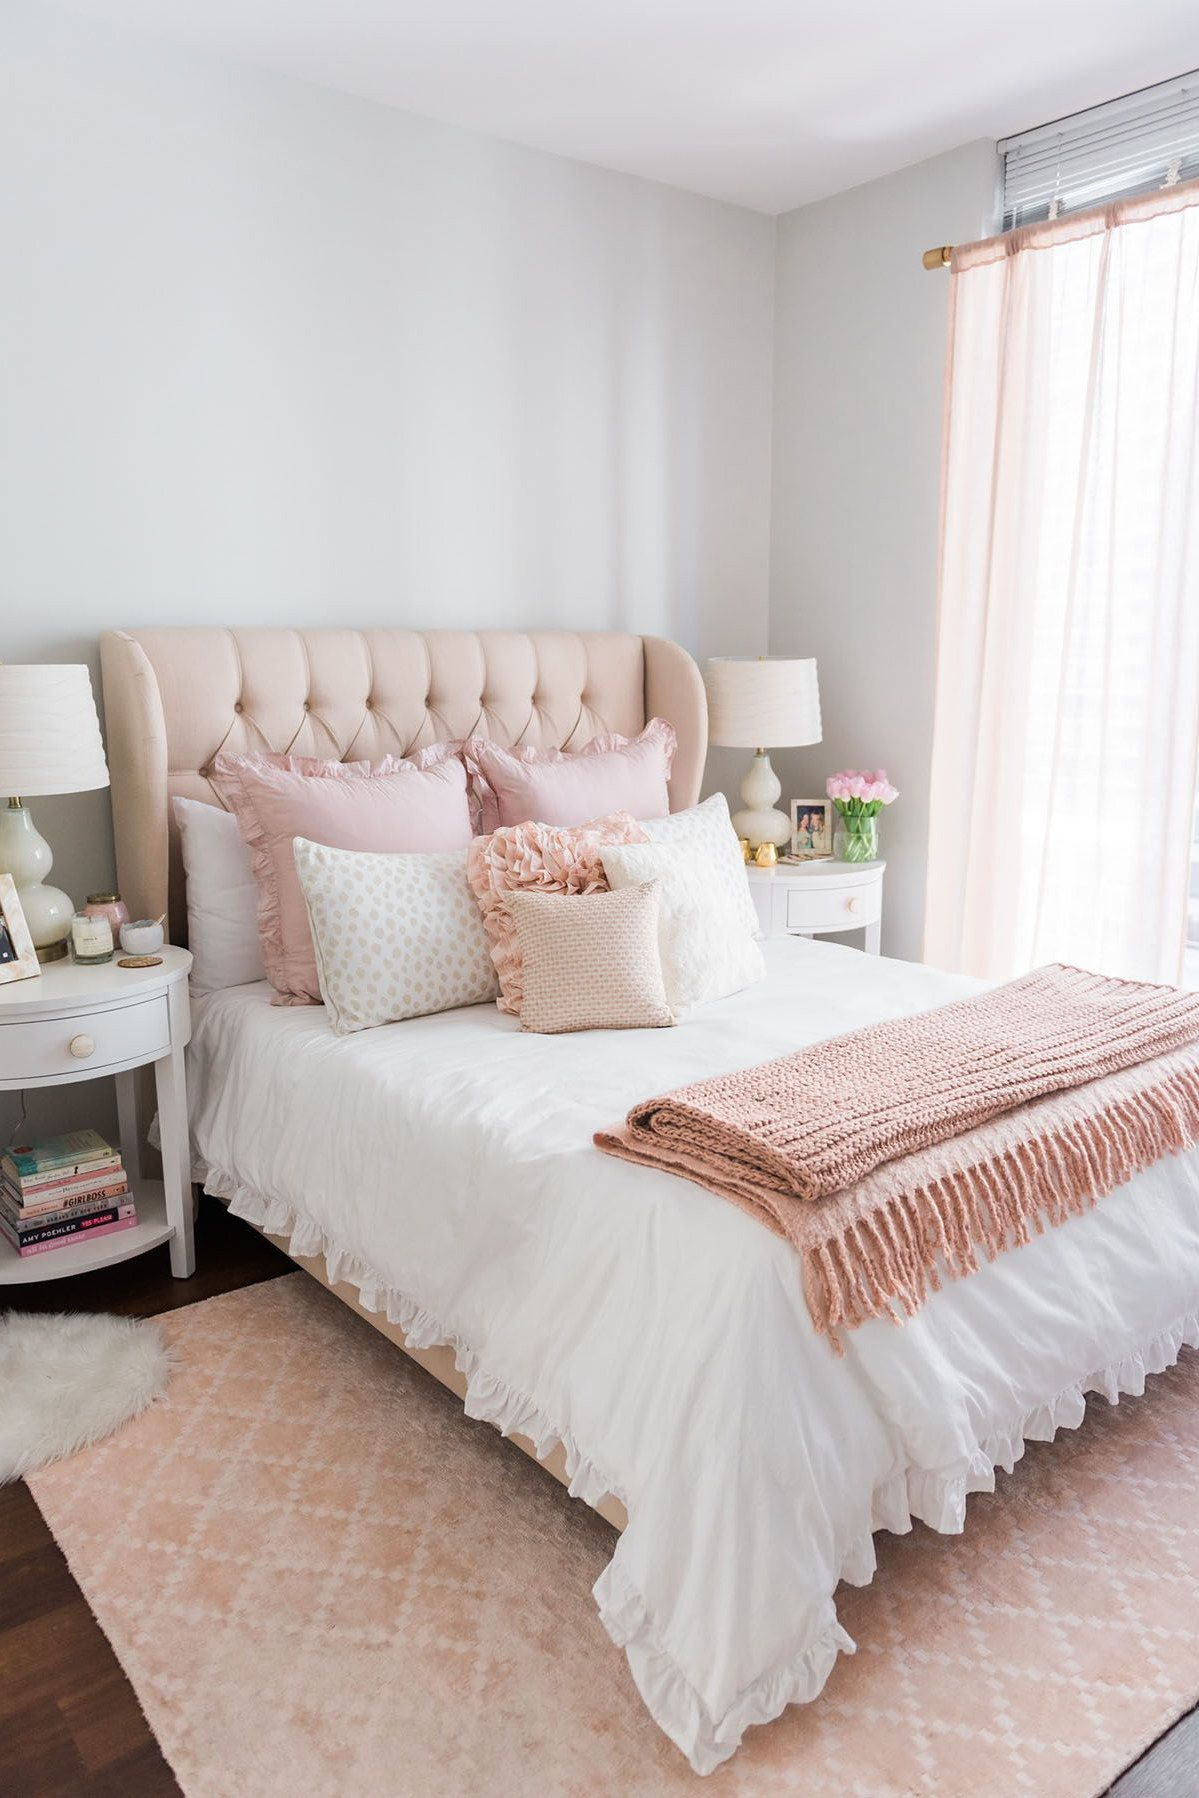 Bedroom Decor All The Bedroom Style Ideas You Are Going